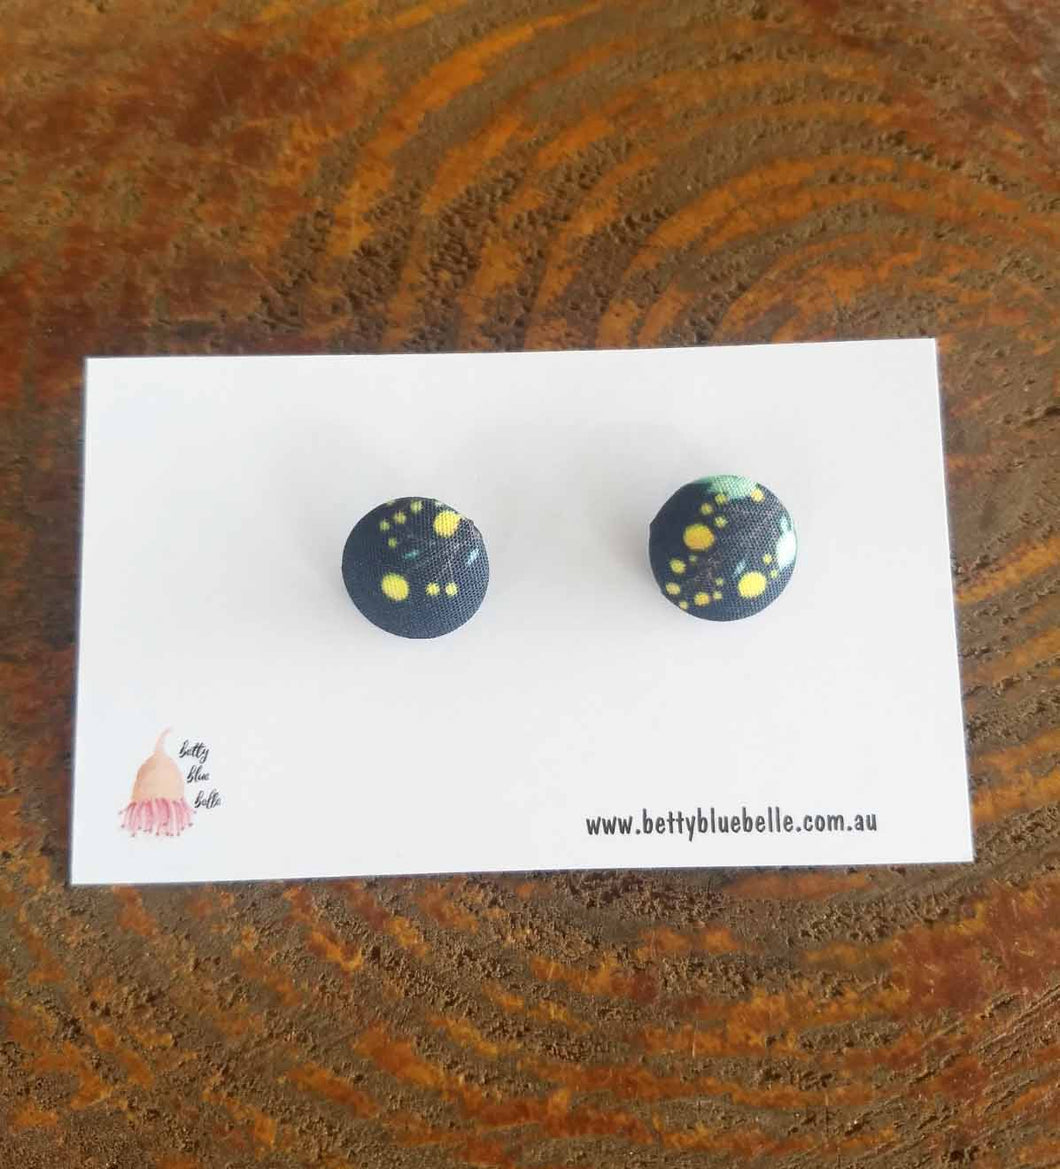 Navy Wattle Pattern Earrings #9 - *FREE Shipping within Australia*